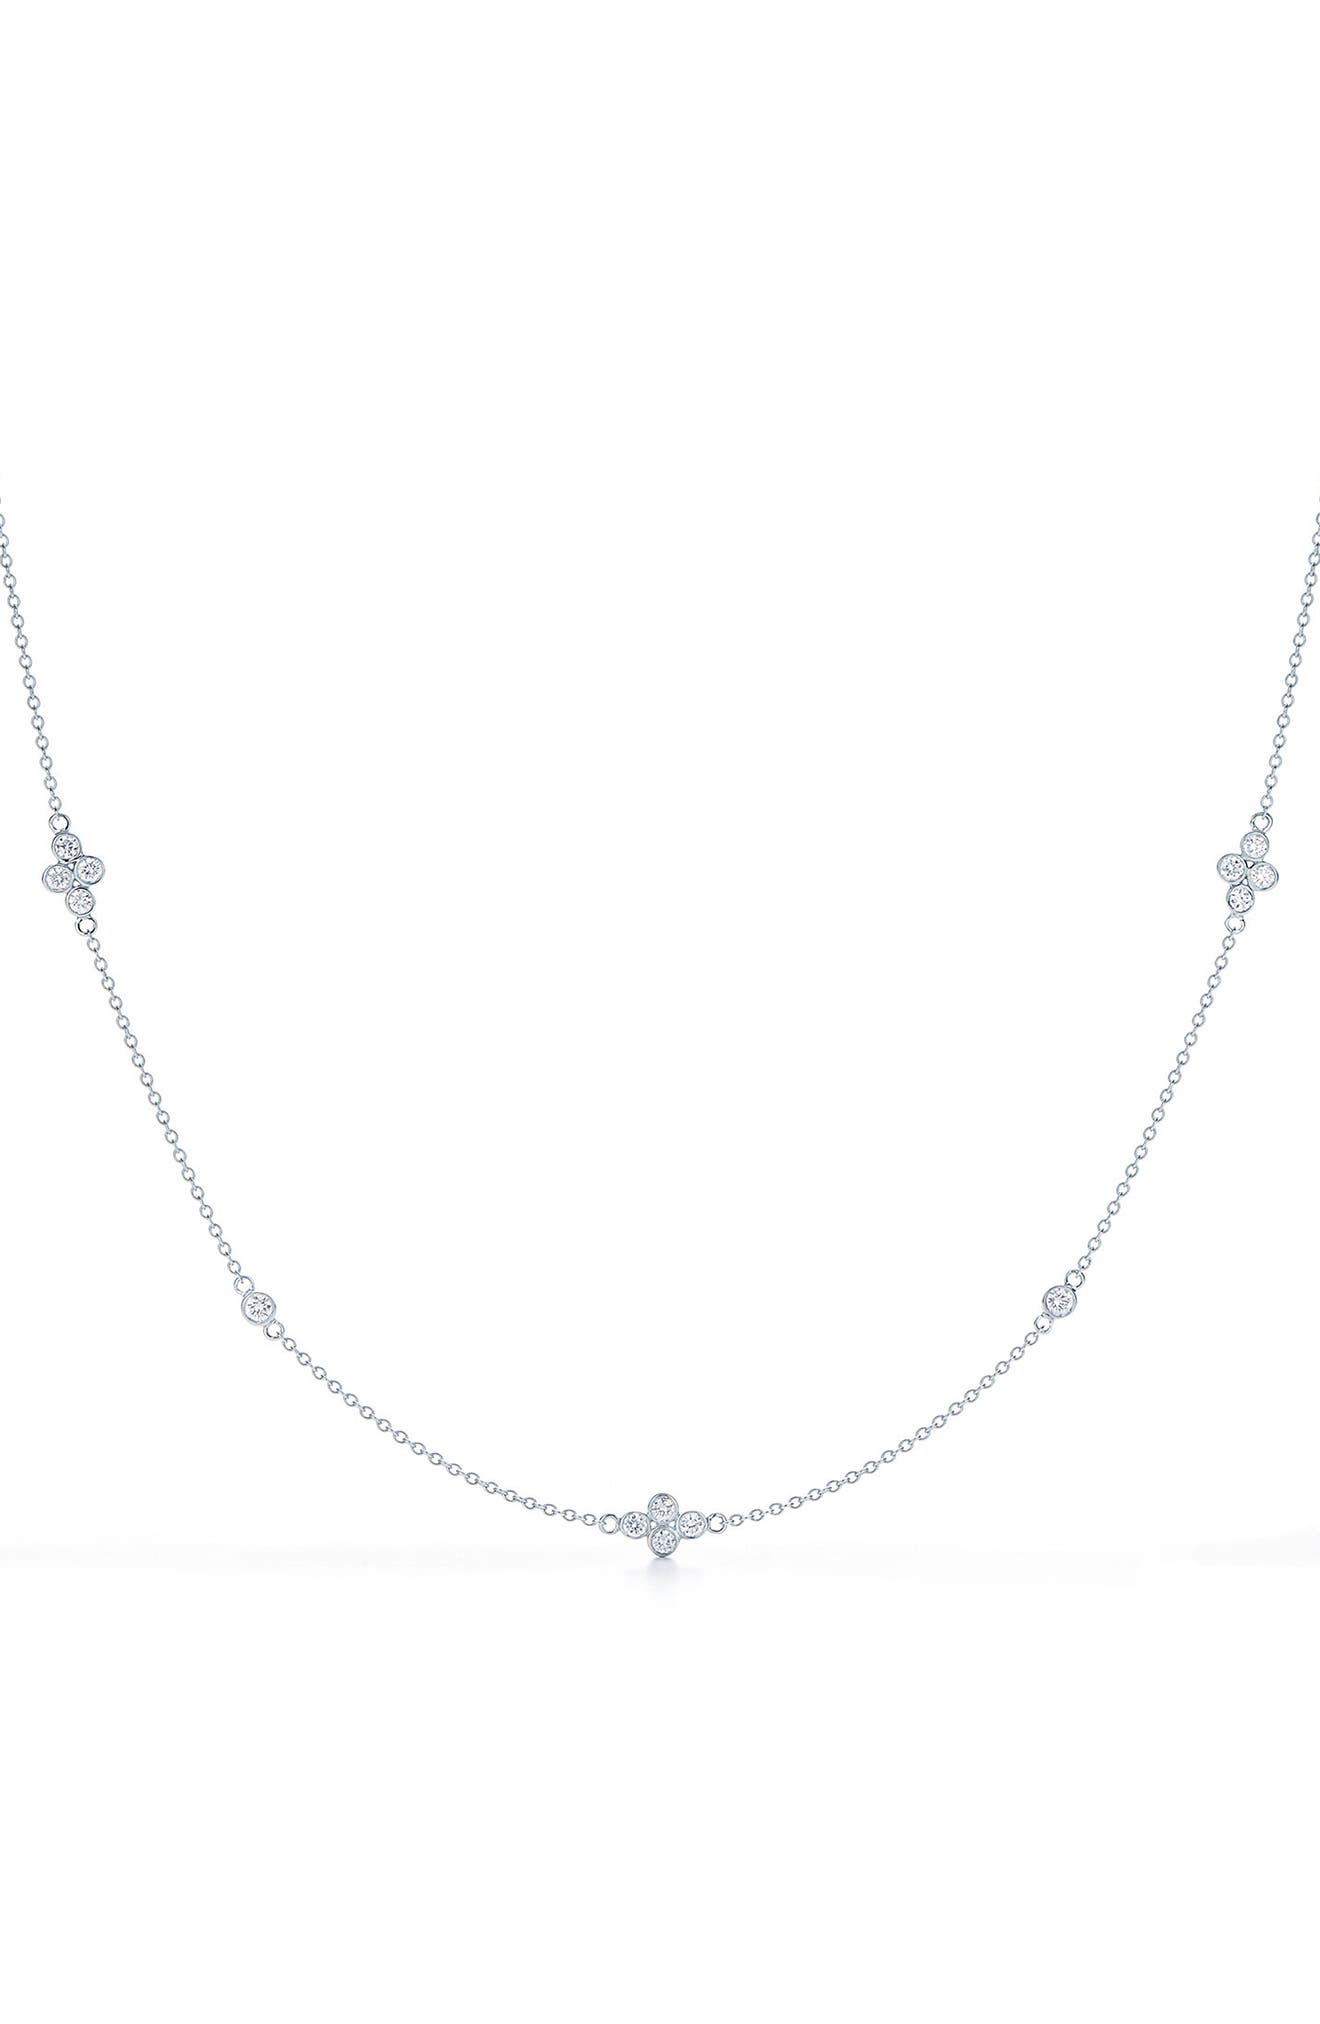 Quad Diamond String Necklace,                             Main thumbnail 1, color,                             WHITE GOLD